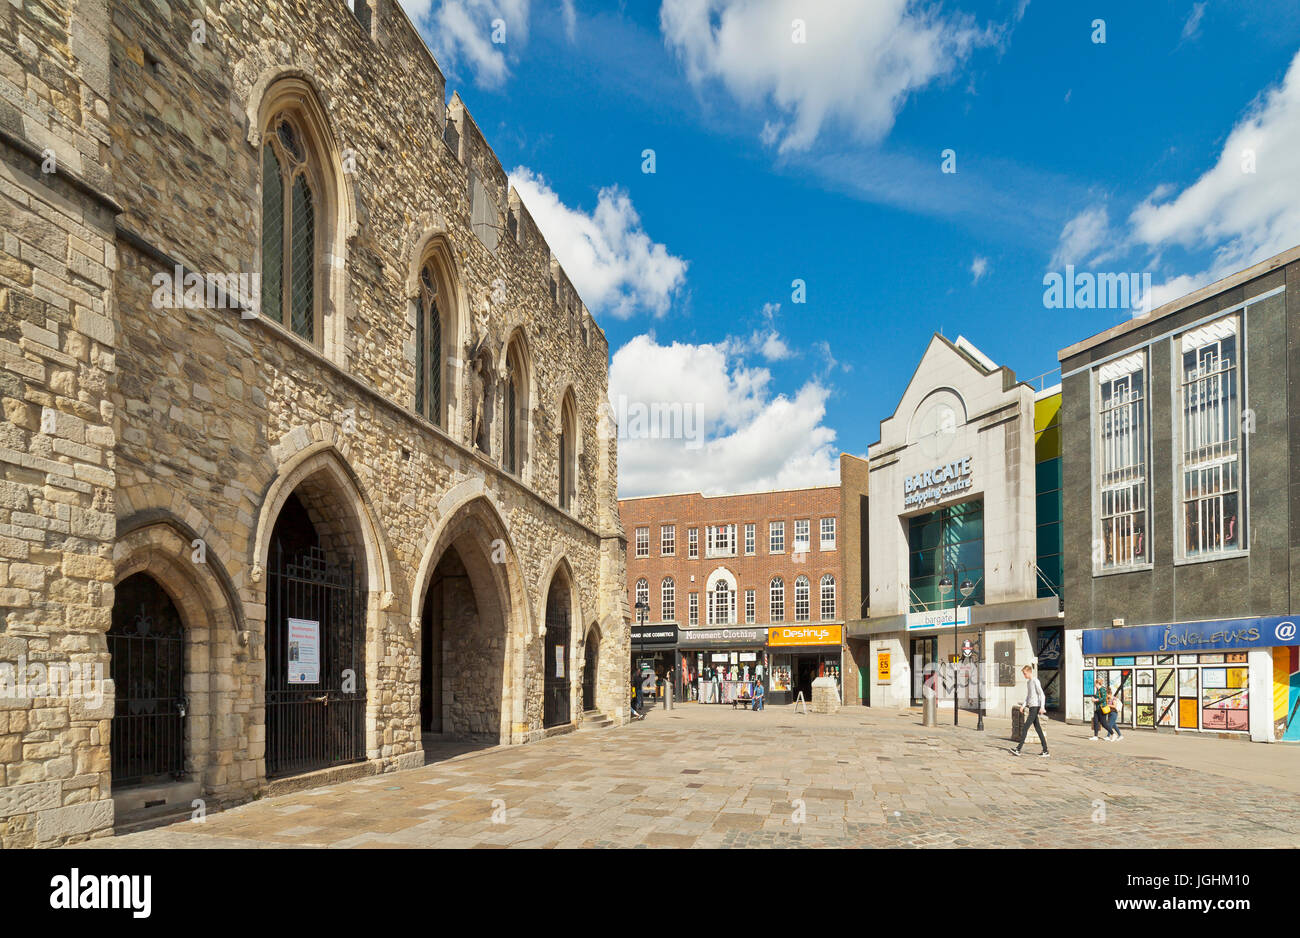 Bargate medieval gatehouse and High Street, Southampton. - Stock Image